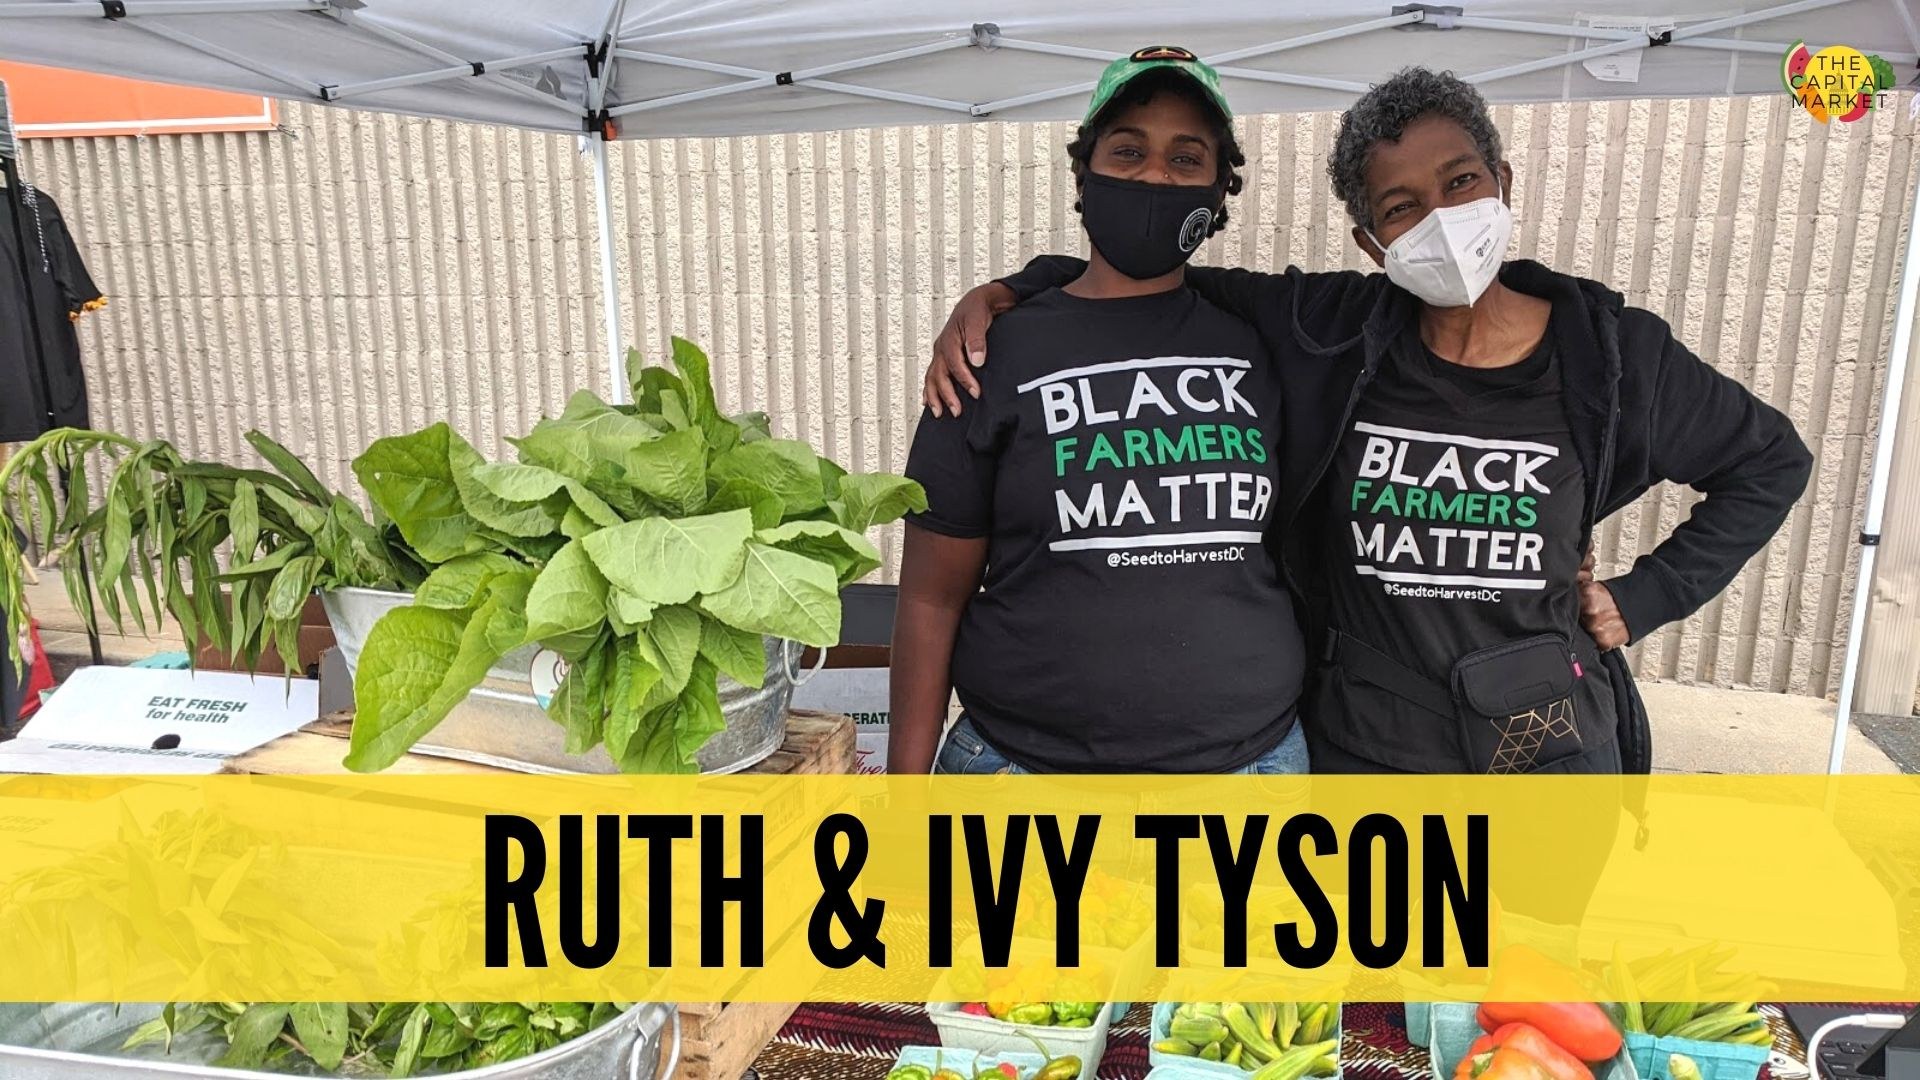 Business Profile: Ruth & Ivy Tyson